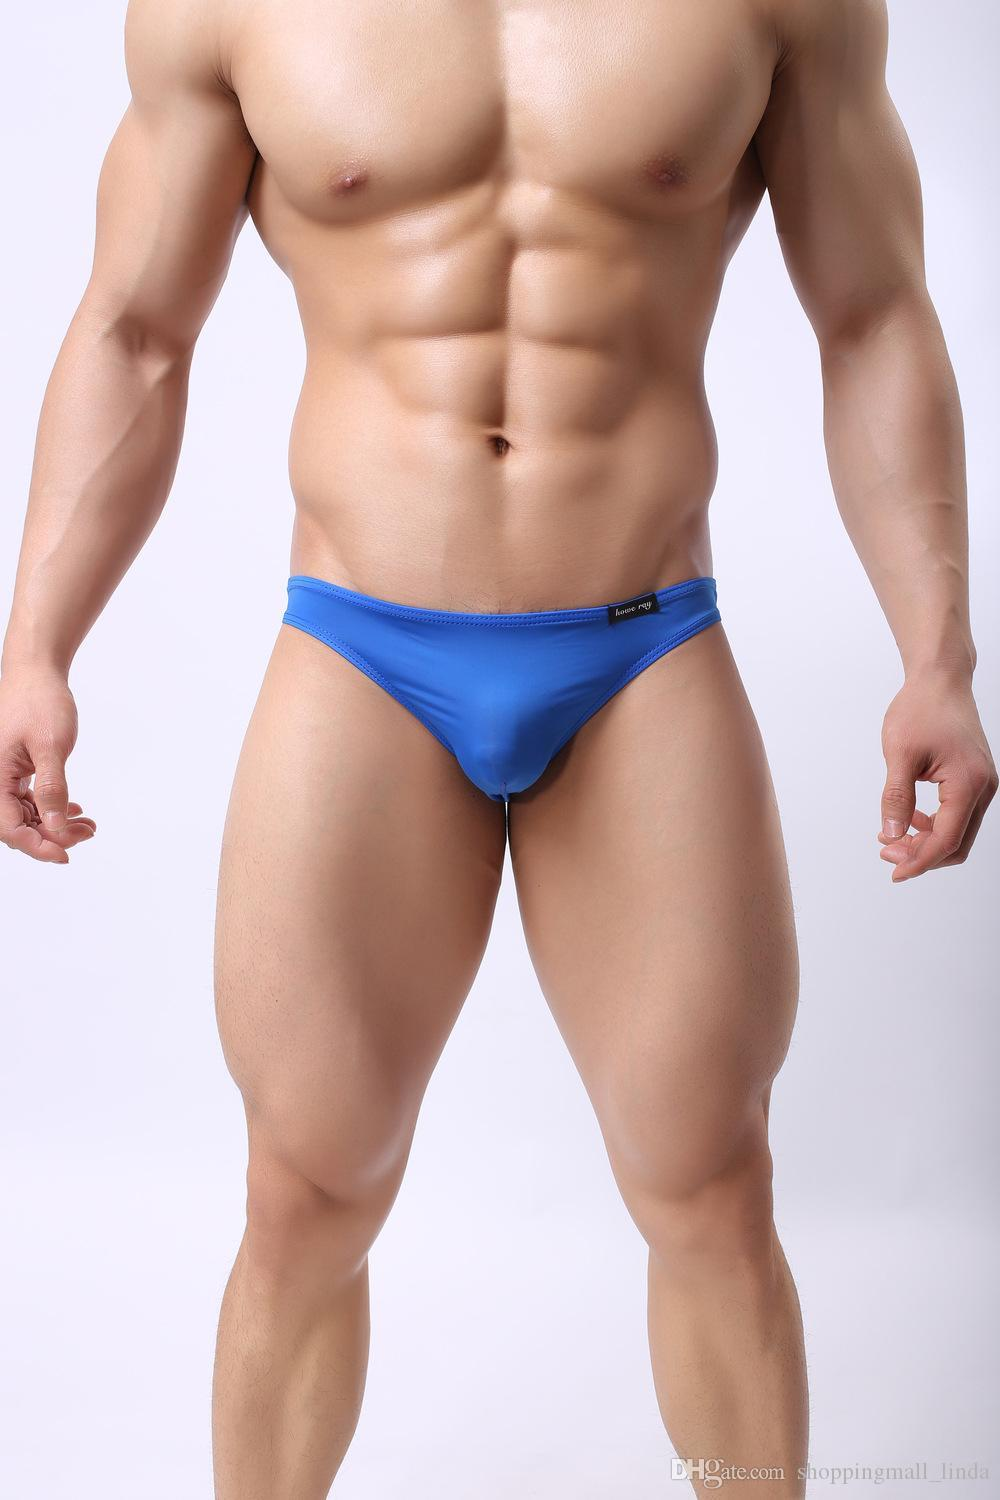 Buy Summer Code Mens Basic Bikini Briefs Pack Low Rise Ice Silk Underwear and other Briefs at erlinelomantkgs831.ga Our wide selection is elegible for free shipping and free returns.4/5(27).